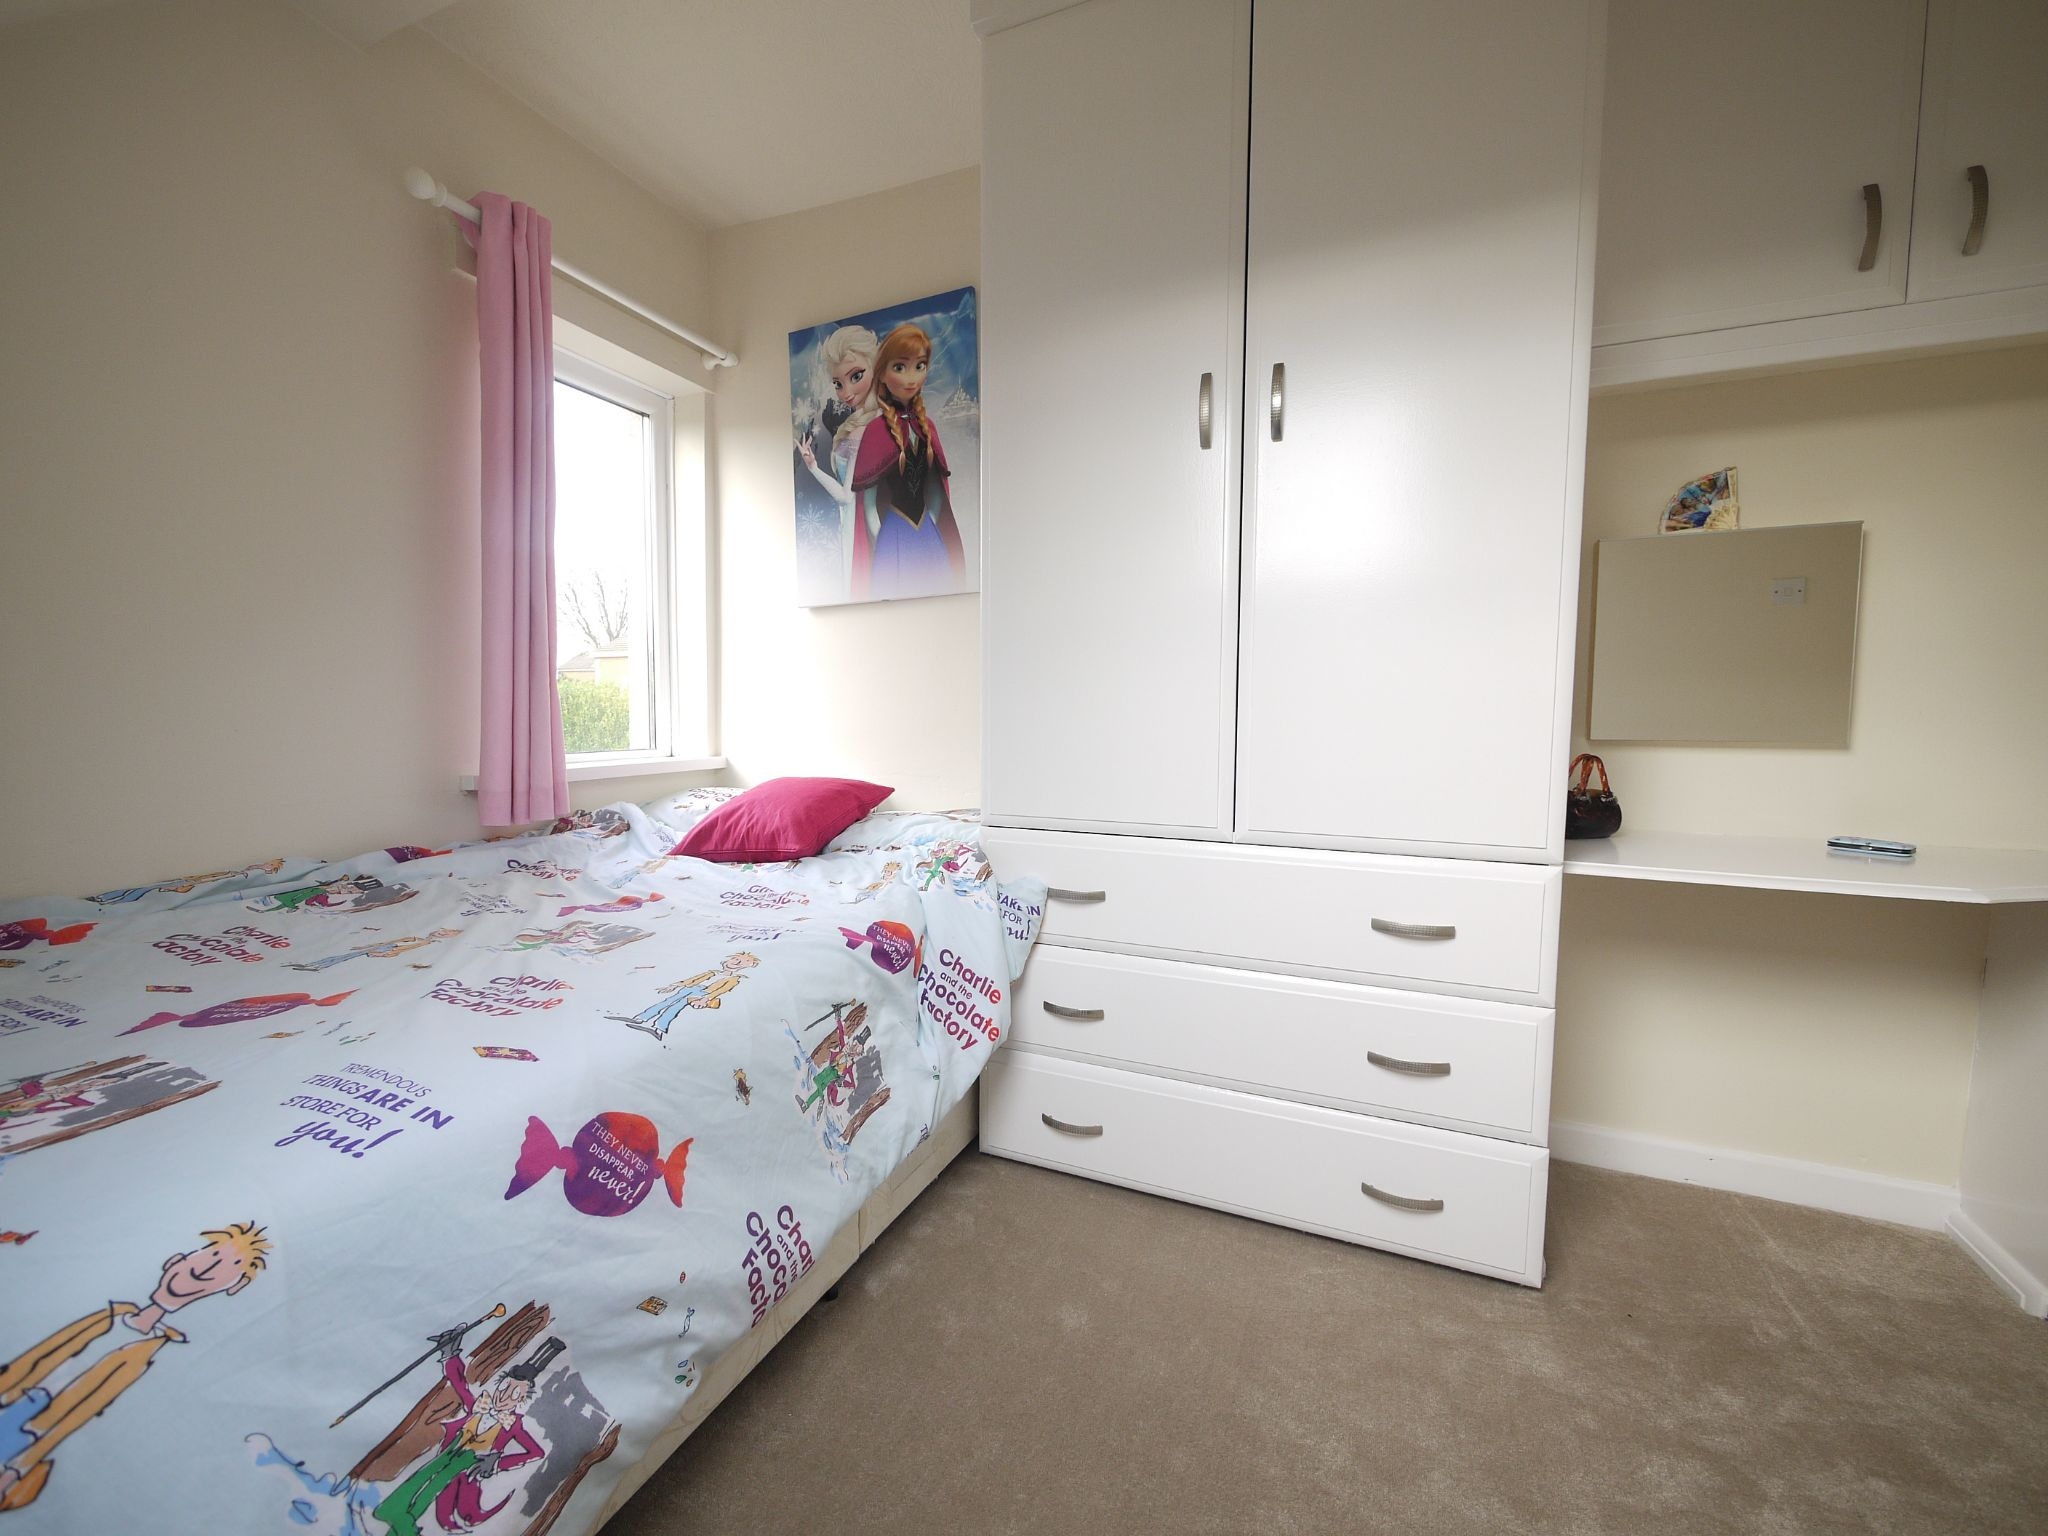 5 bedroom detached bungalow For Sale in Brighouse - bed 3.